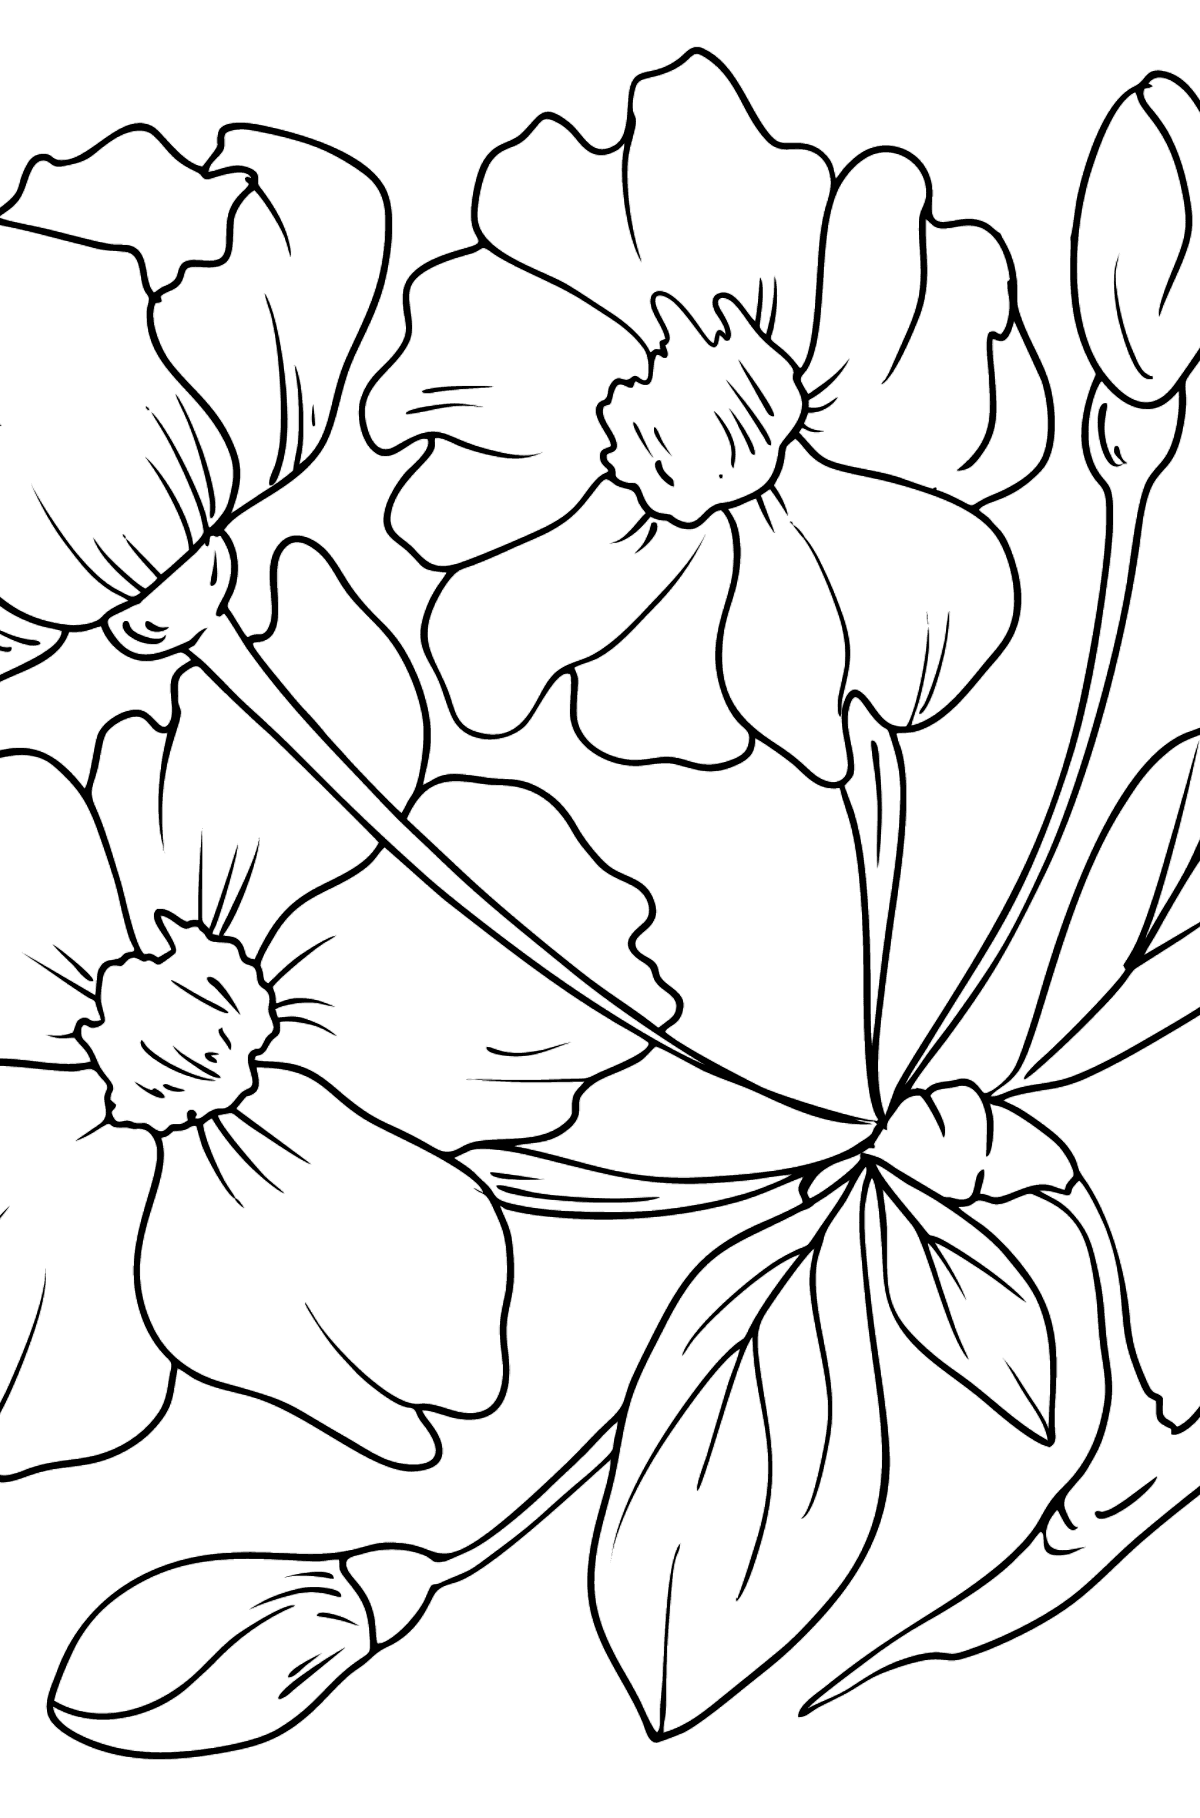 Flower Coloring Page - Sakura - Coloring Pages for Kids